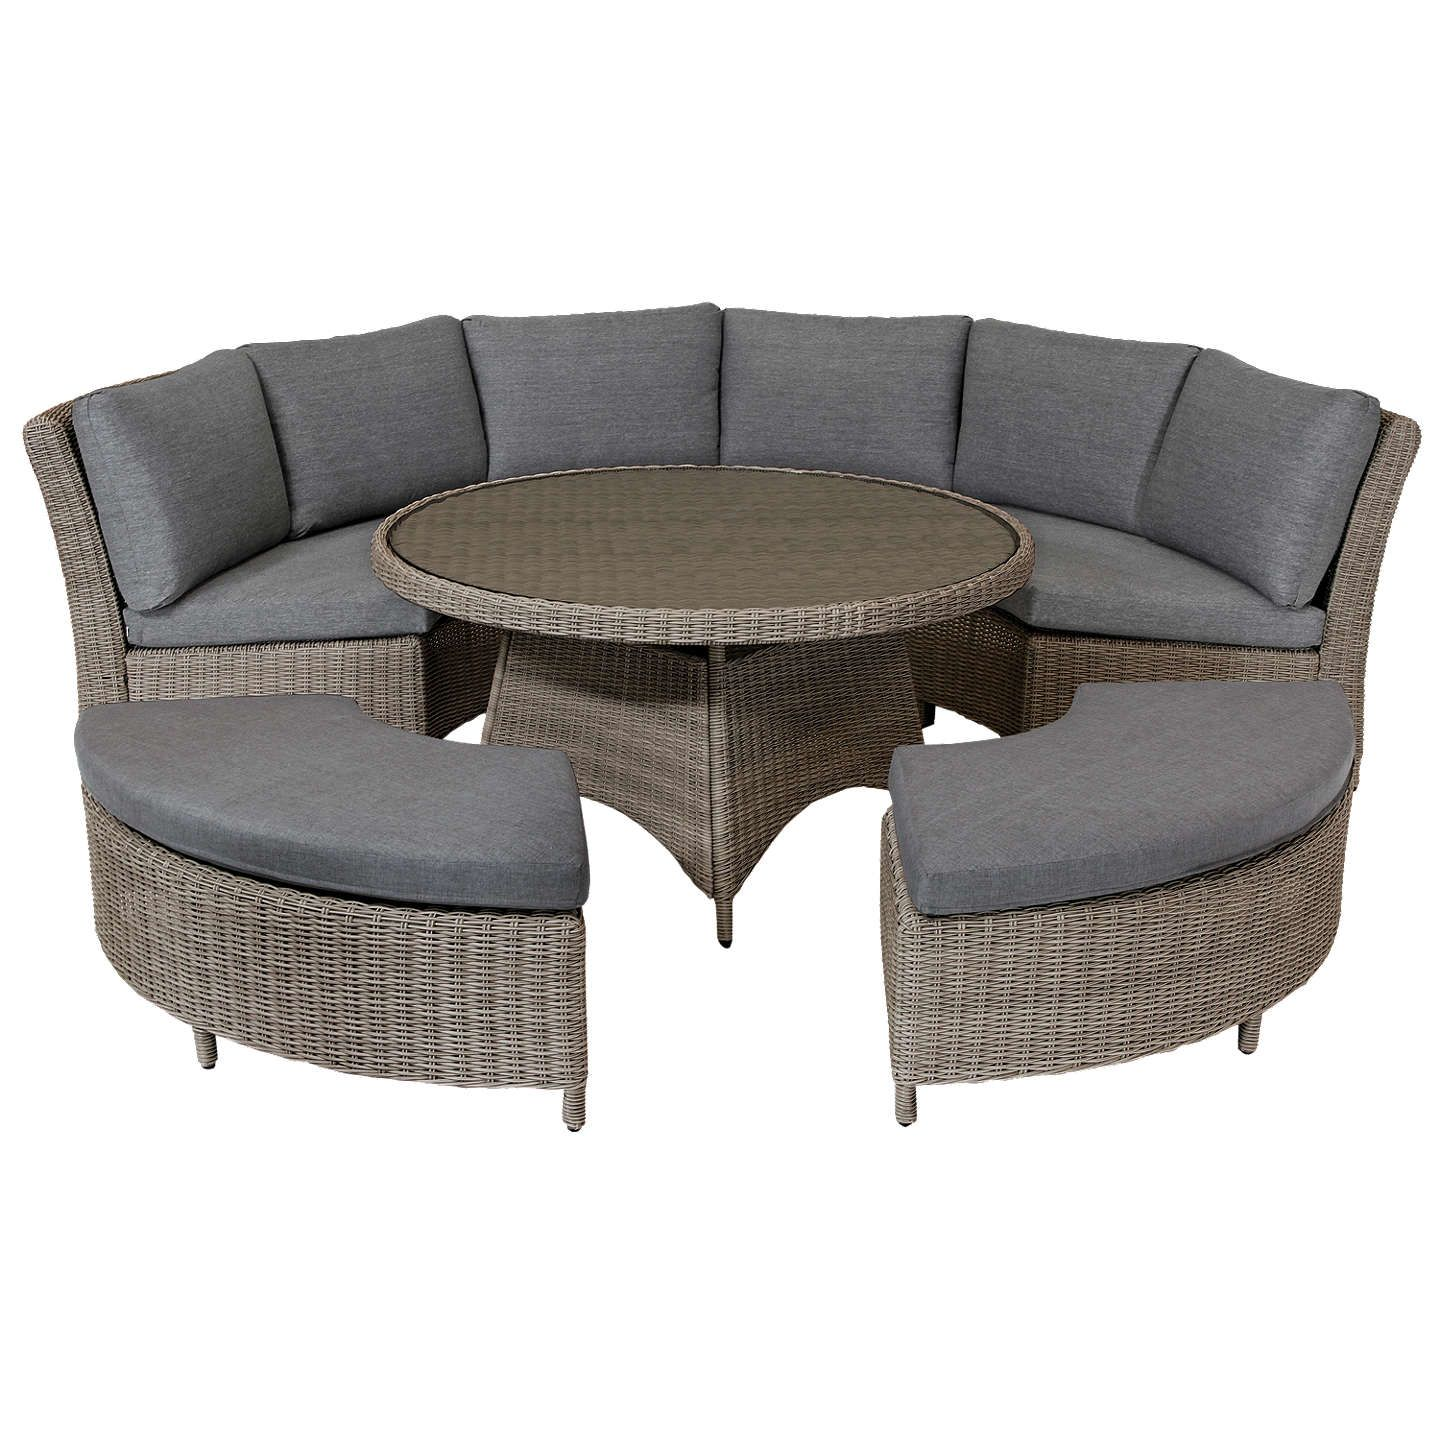 Kettler palma 8 seater round garden dining table and